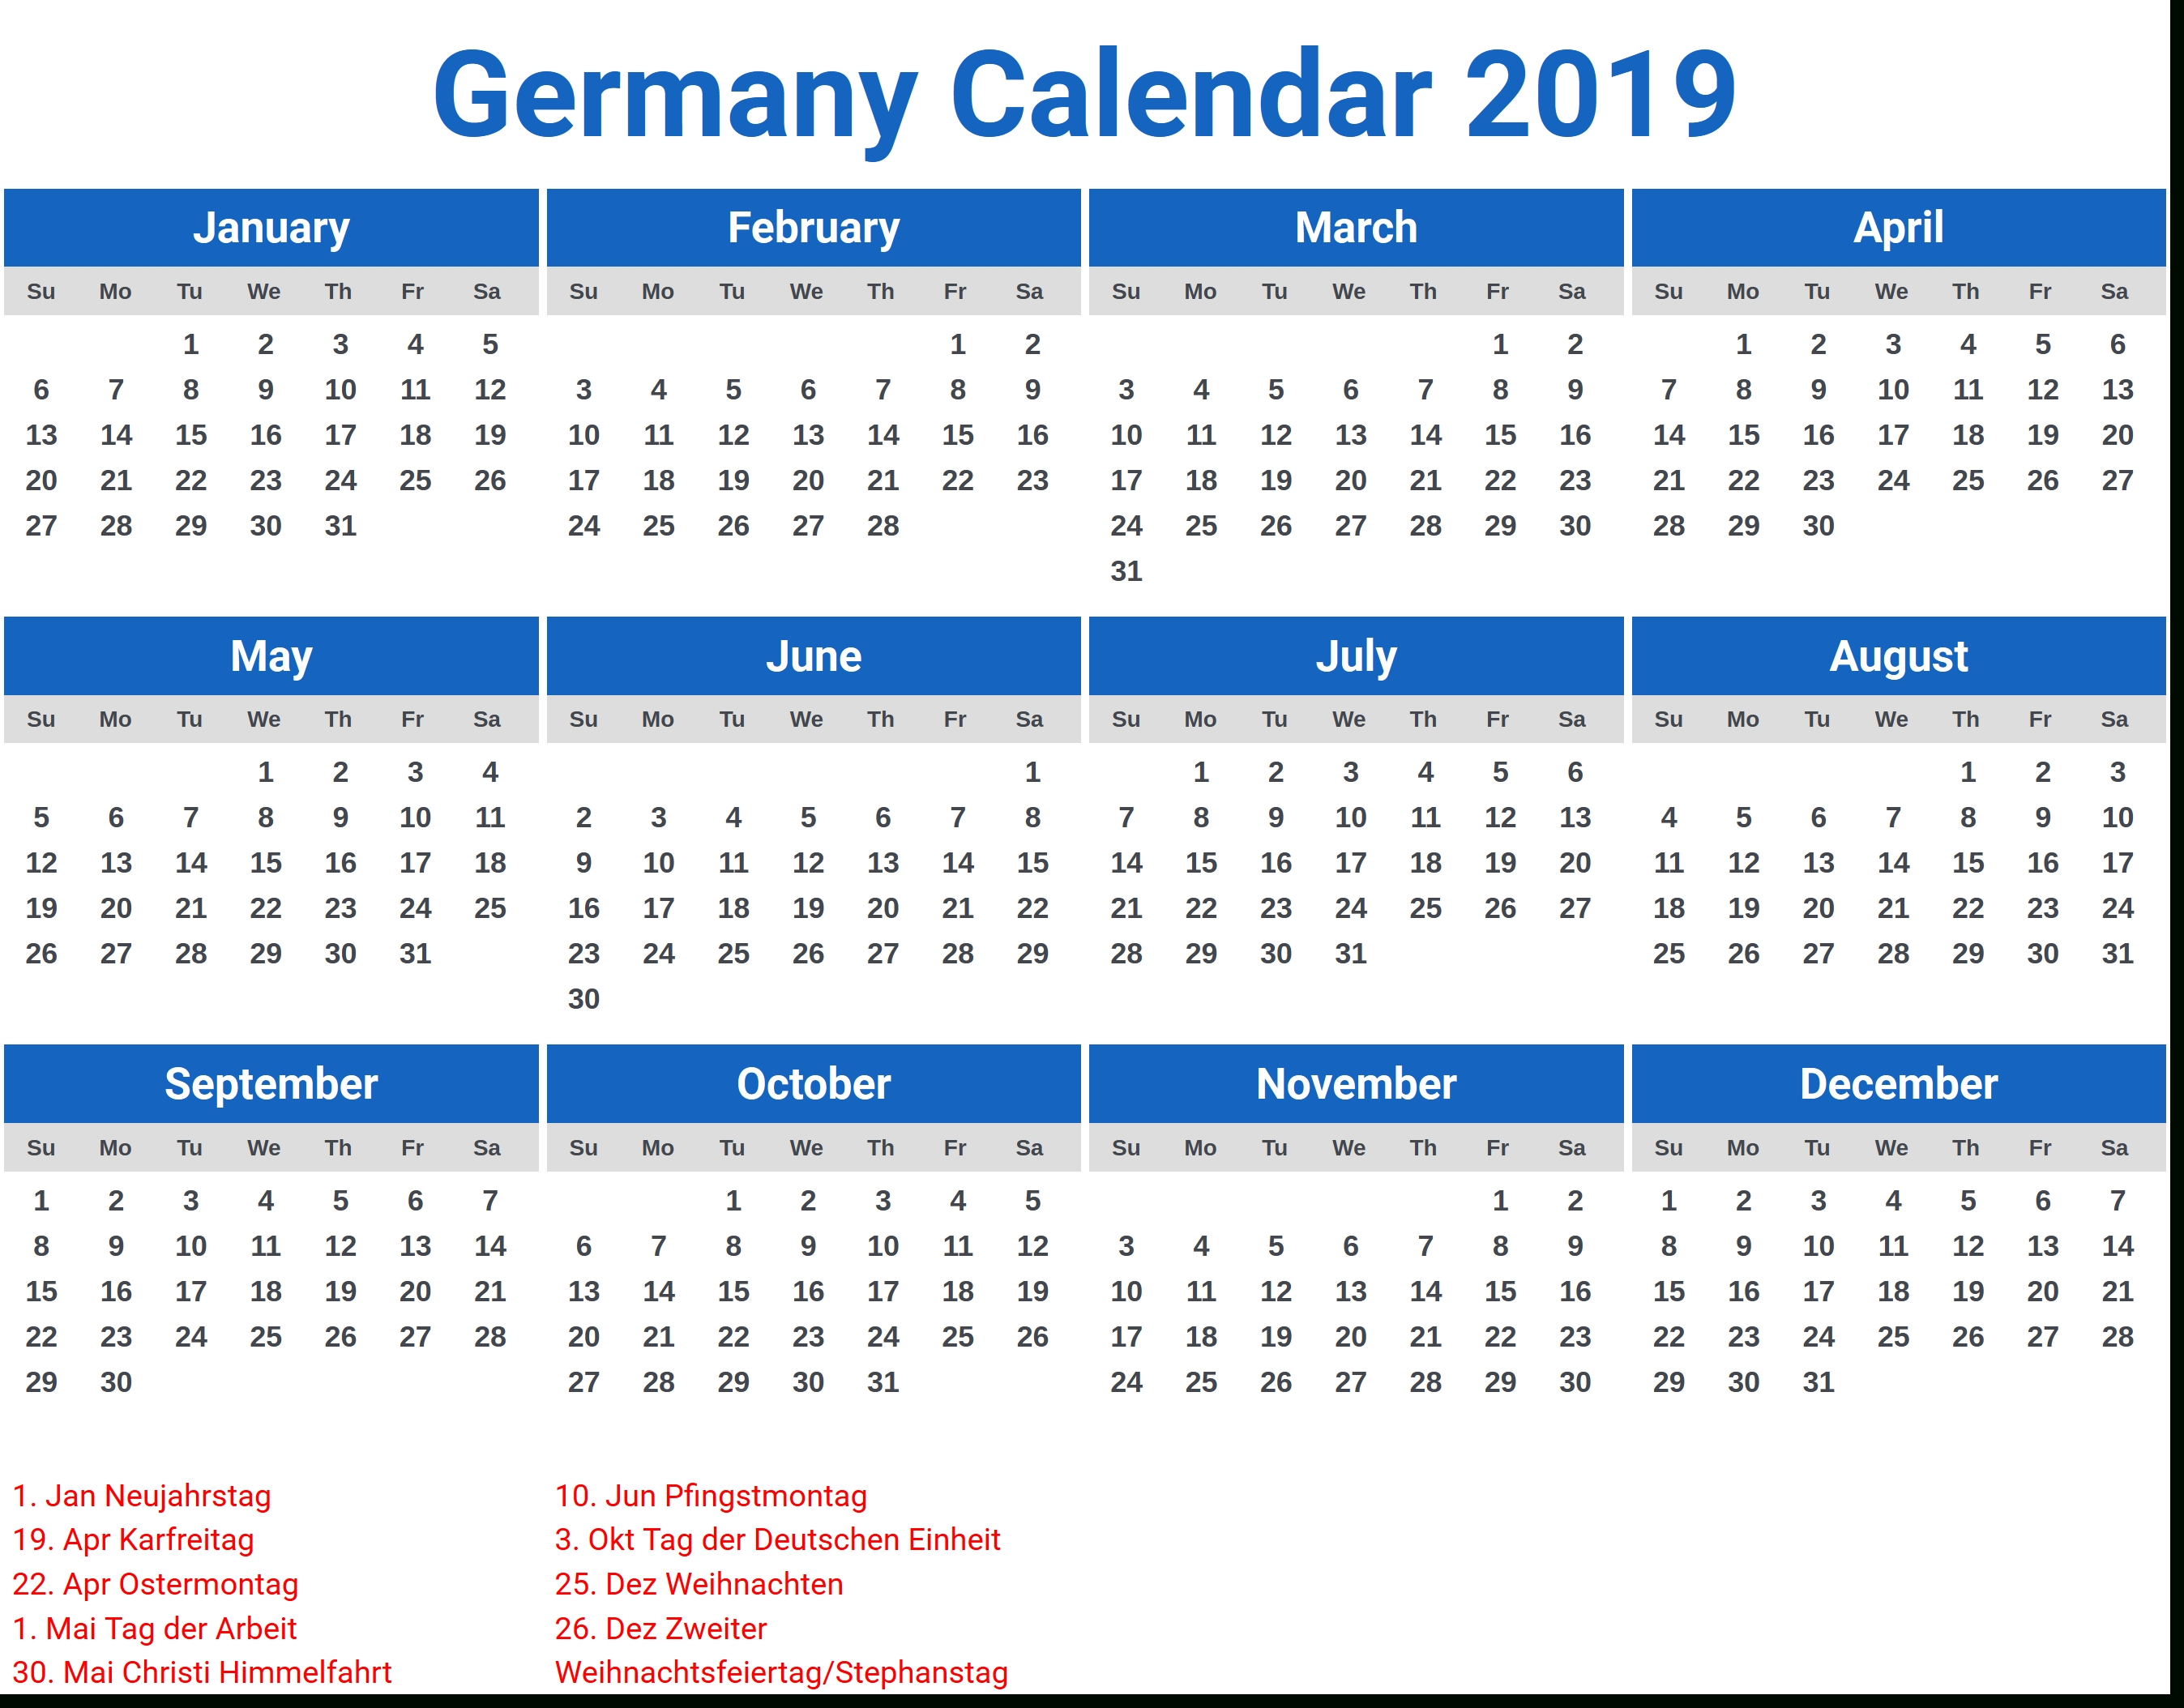 Germany 2019 Calendar With Holidays | 2019 Calendars | Pinterest Calendar 2019 Germany